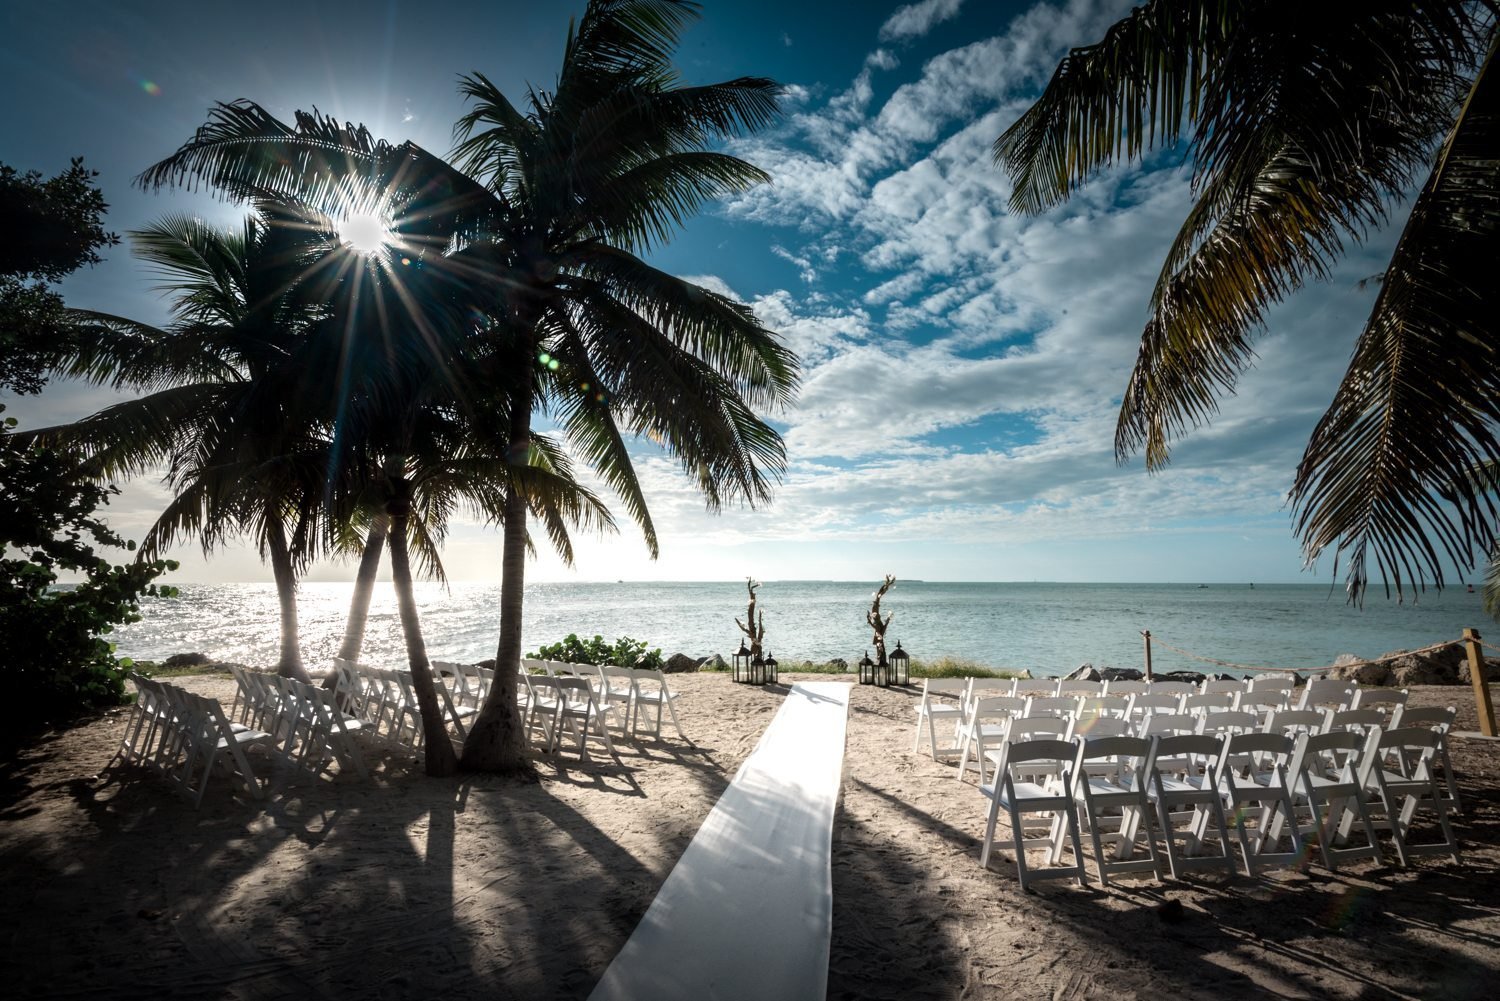 Erin Colin Fort Zachary Taylor Rooftop Cafe Key West Wedding Photographer 18 - Erin & Colin   Key West Wedding Photographer   Fort Zachary Taylor